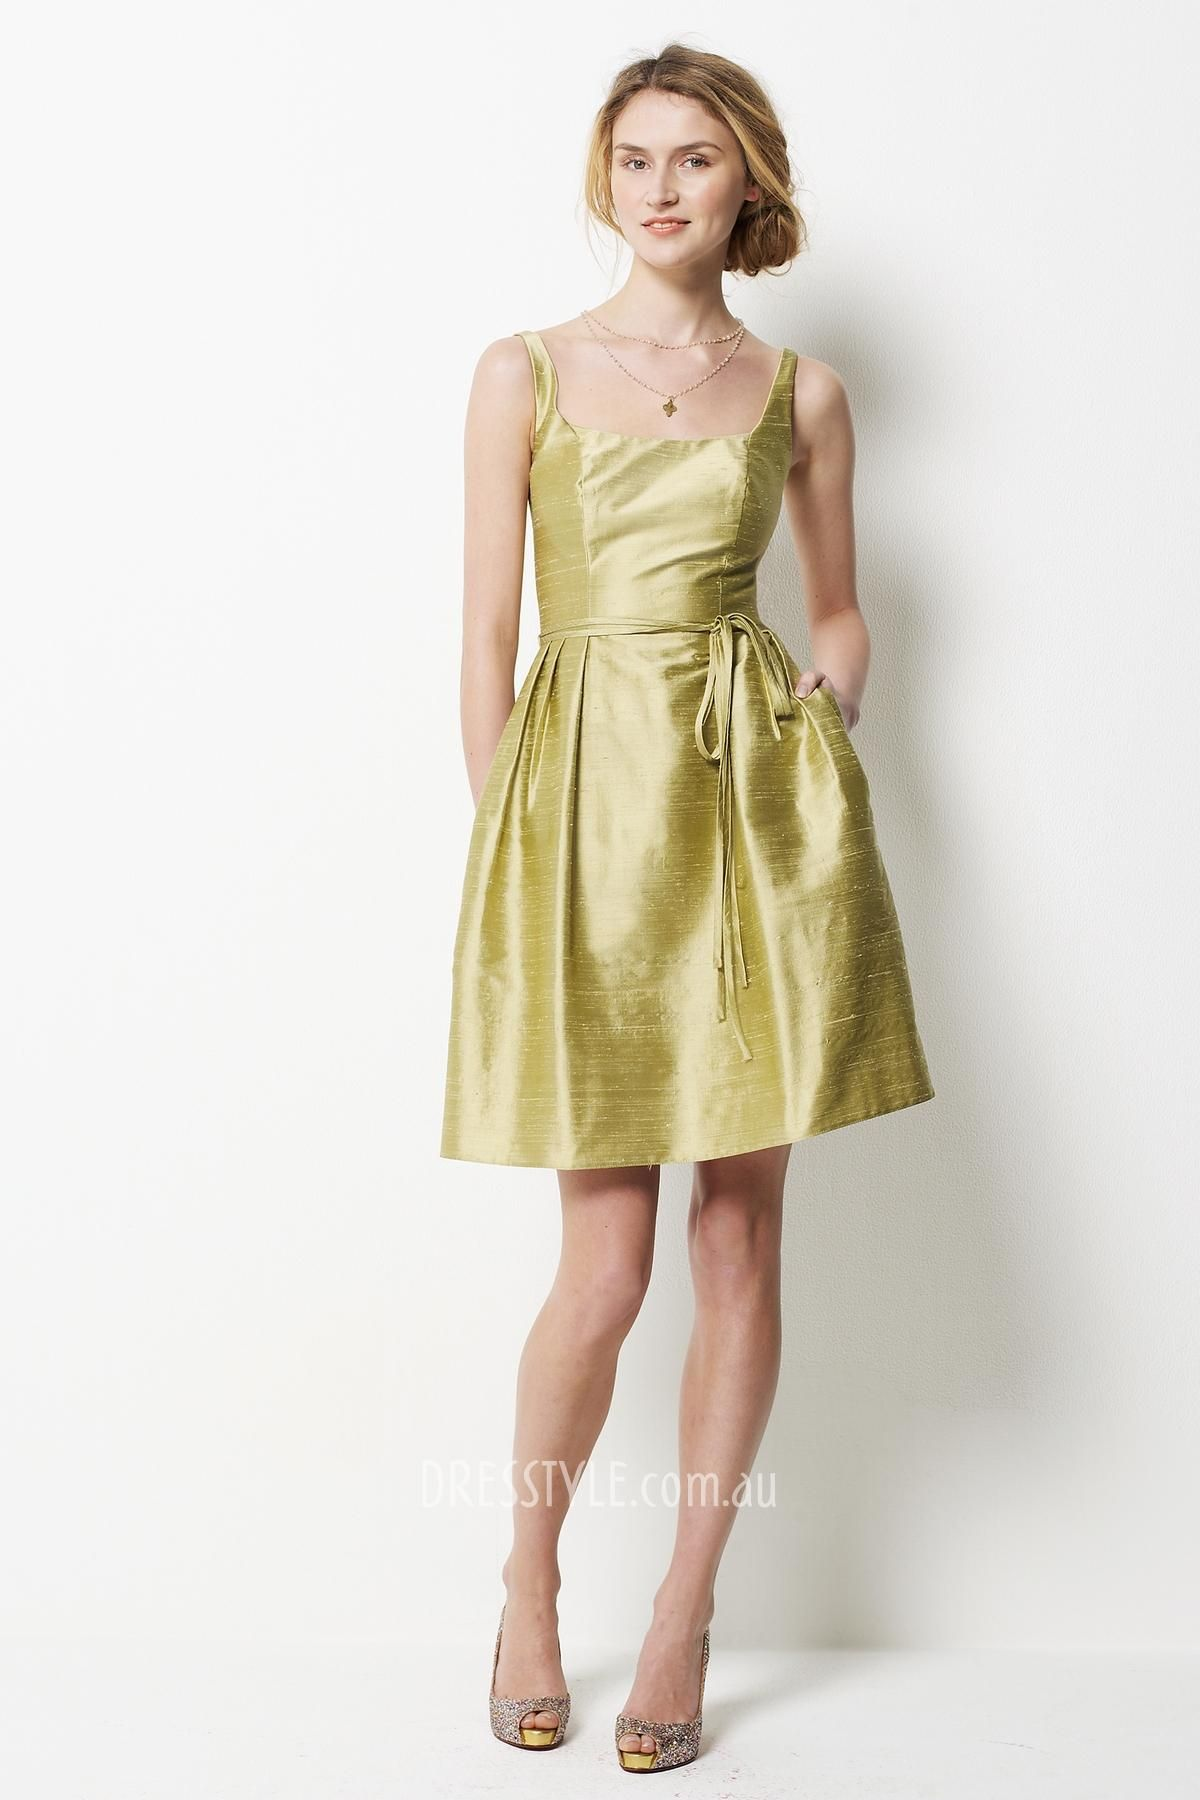 Yellow simple sleeveless dress styles